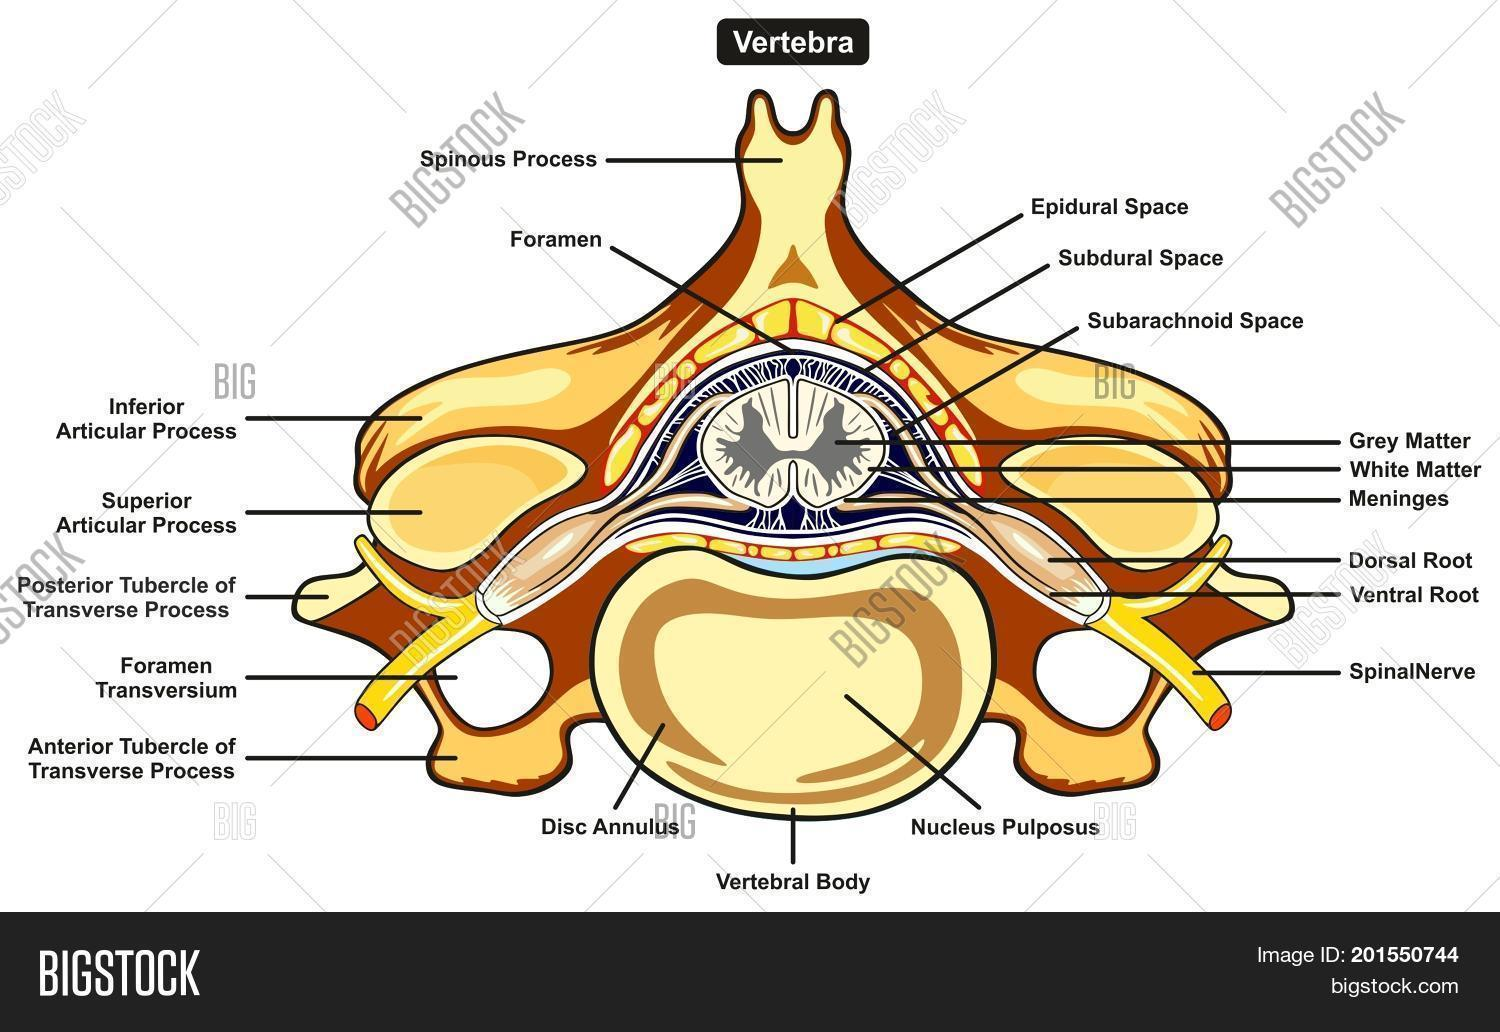 Vertebra cross section image photo free trial bigstock vertebra cross section of human body anatomy infographic diagram including all parts cord of grey and ccuart Choice Image